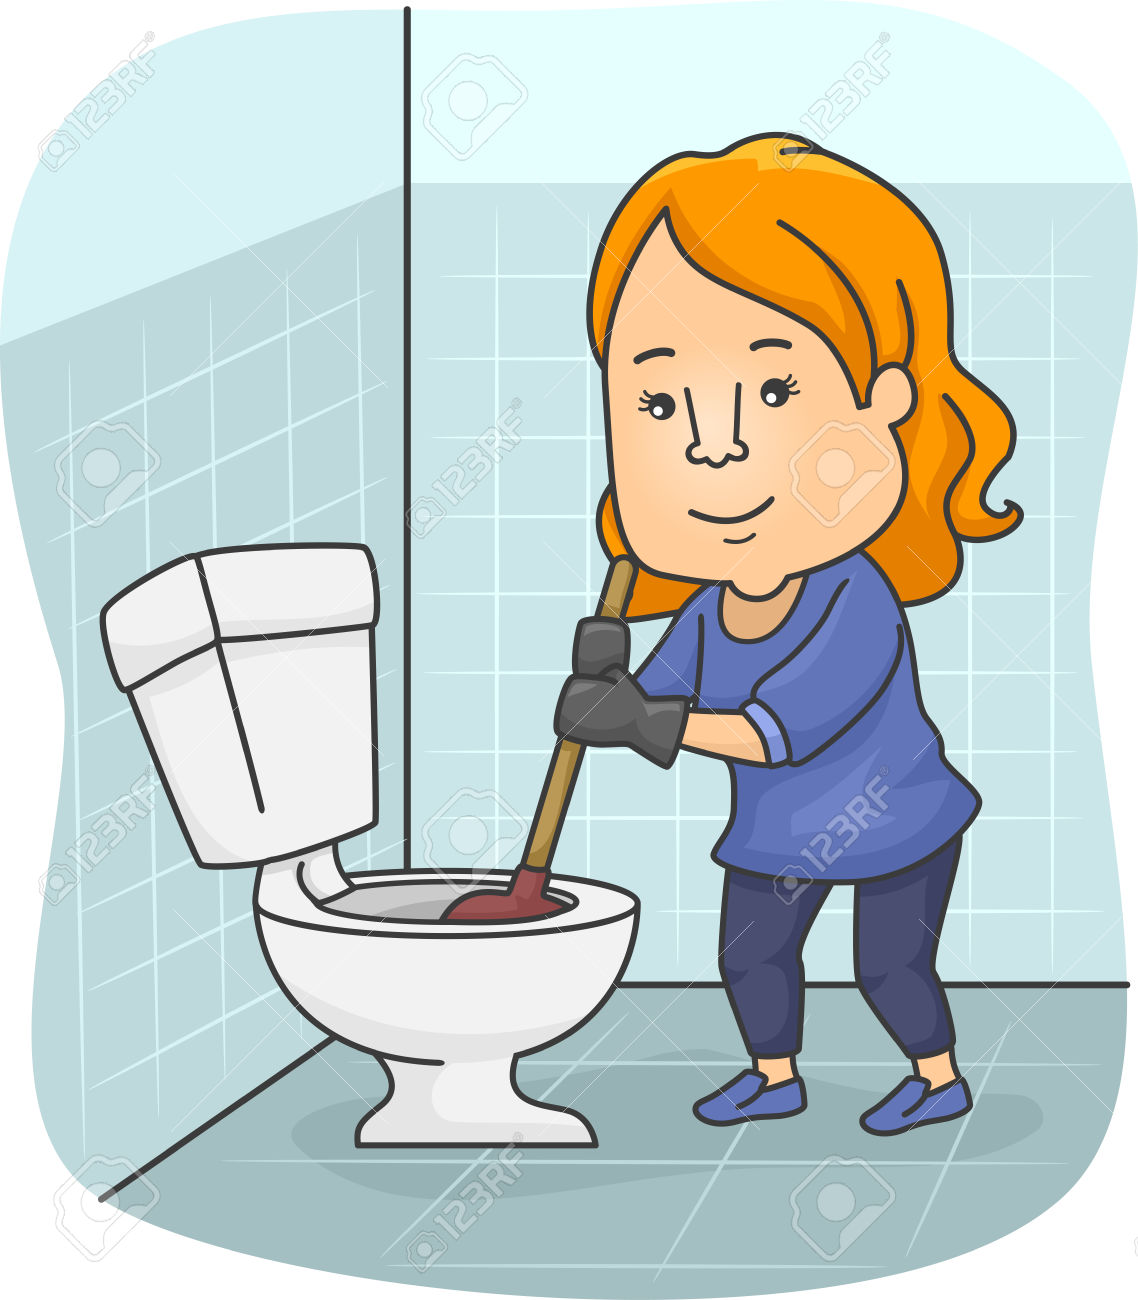 Bathroom clean up clipart svg stock Toilet cleaner clipart - Clip Art Library svg stock